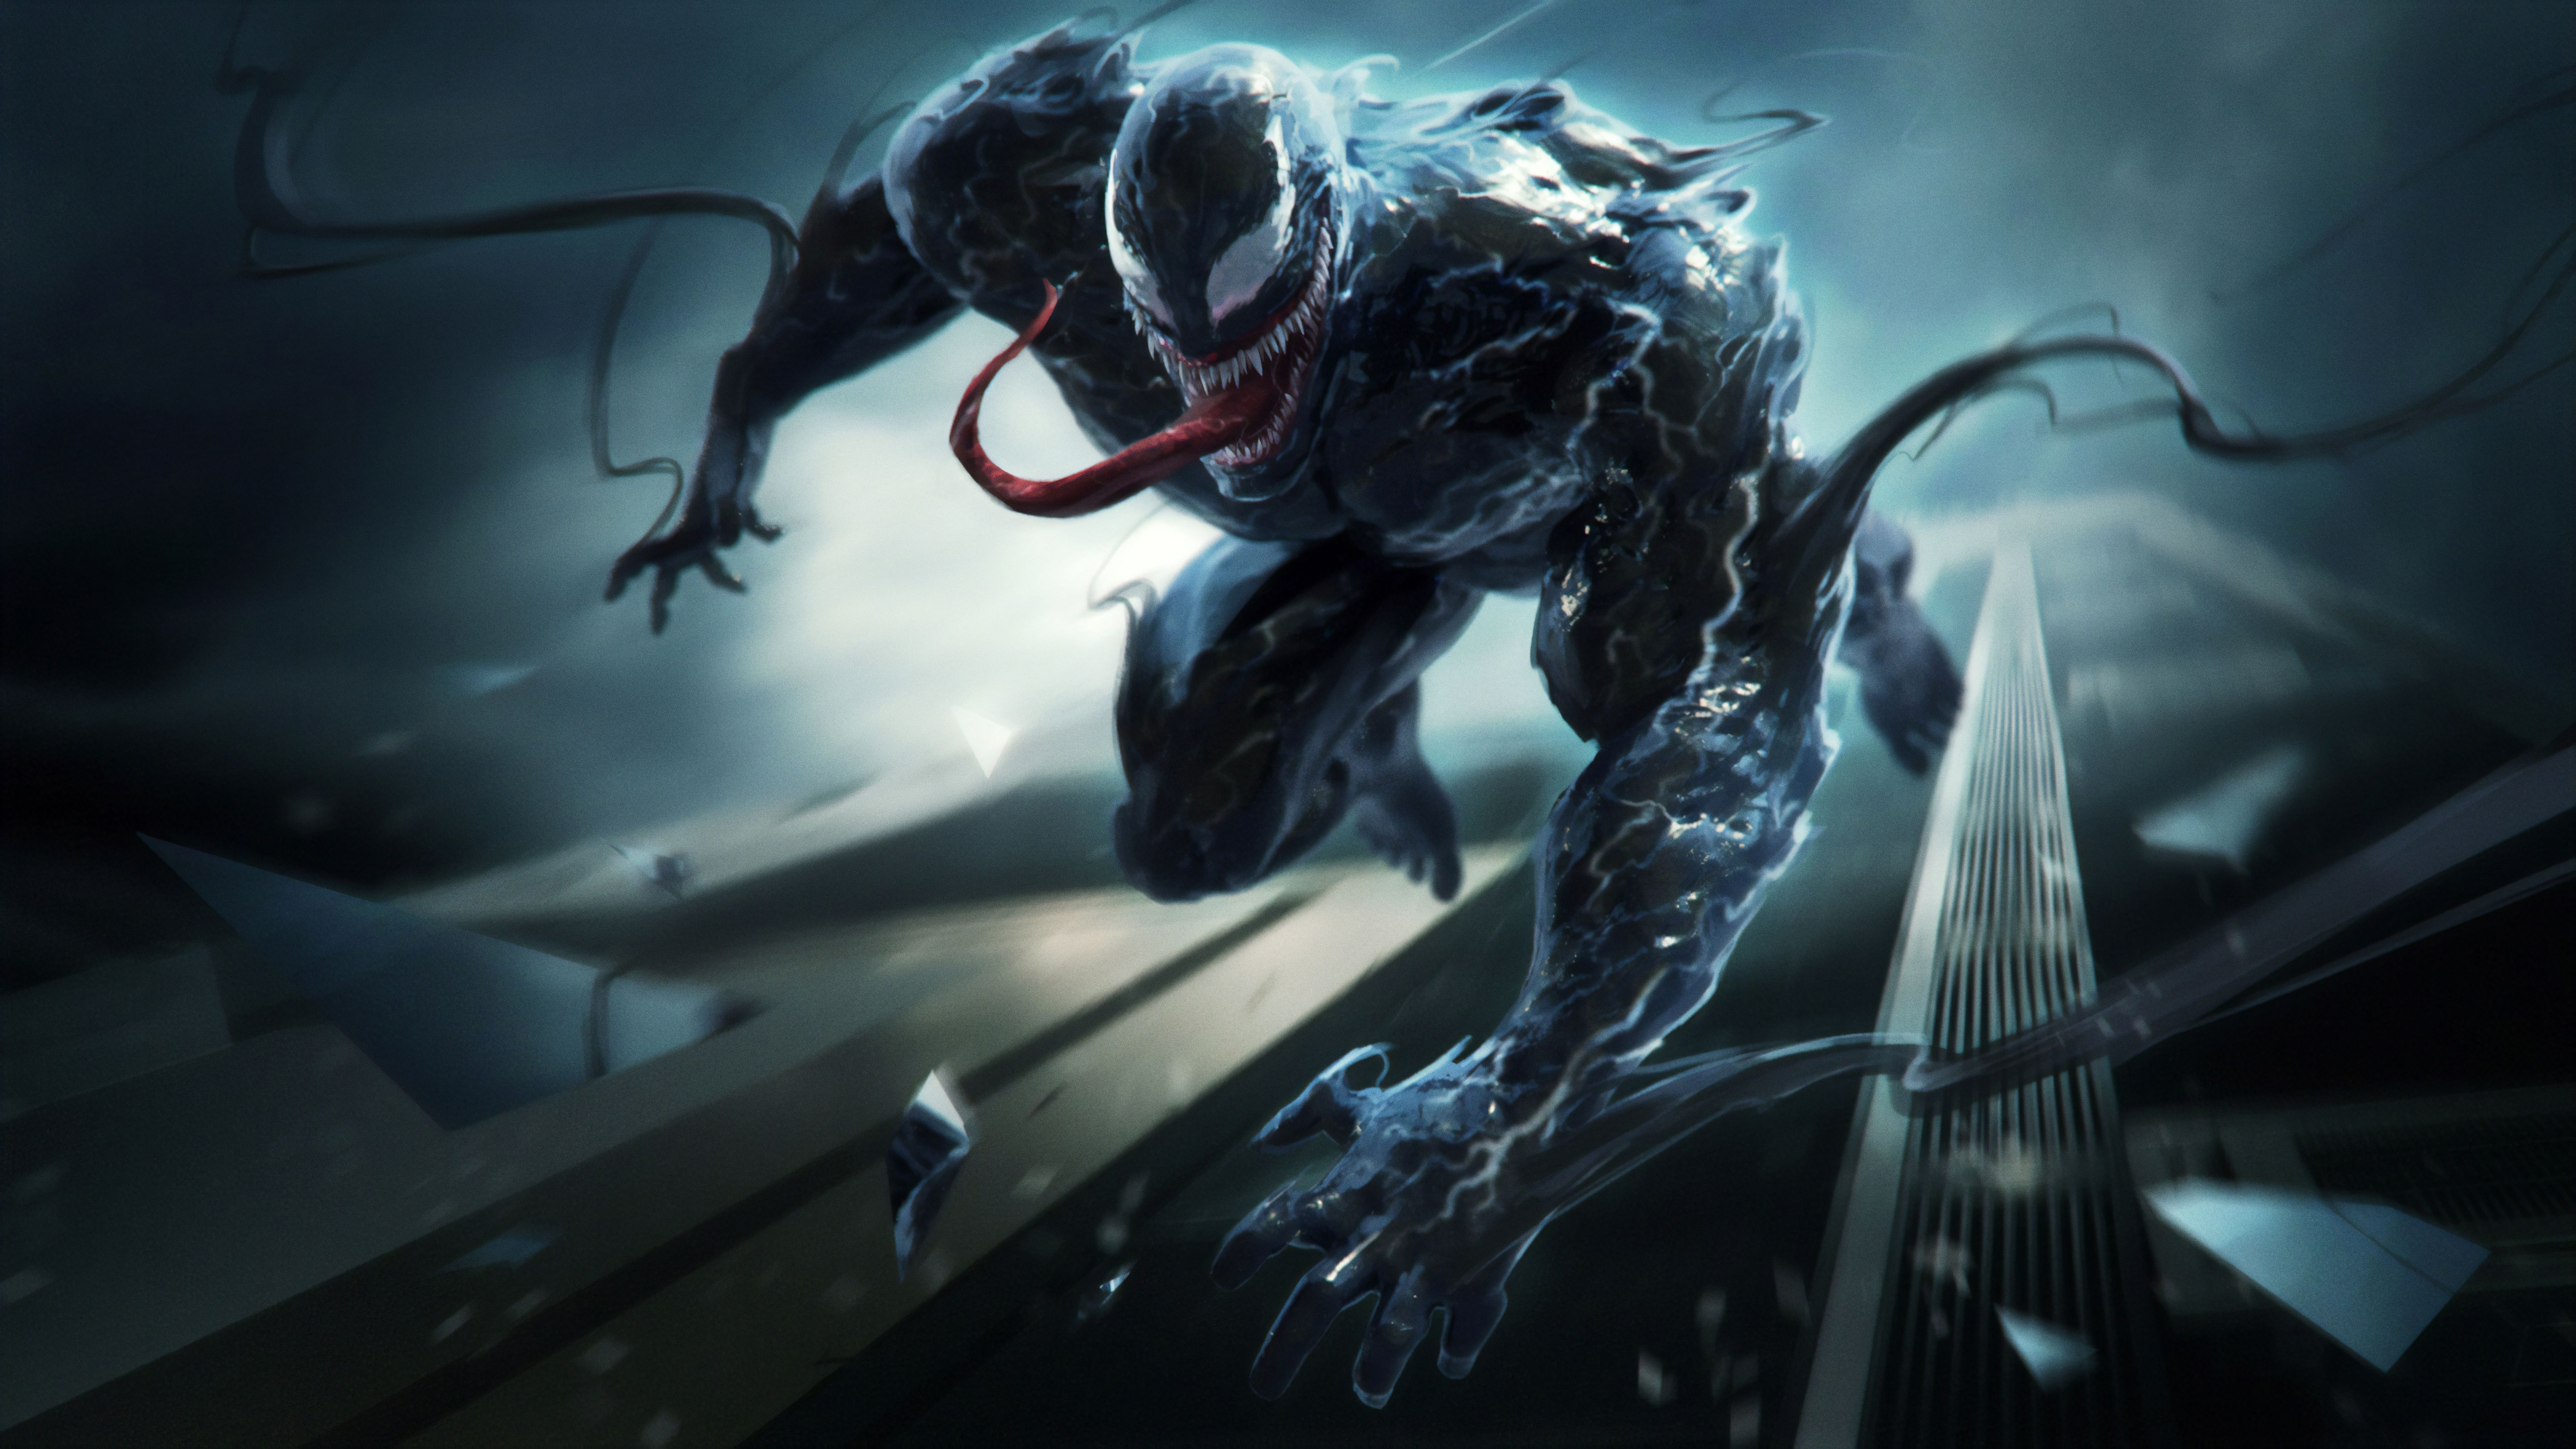 Top Venom Wallpapers for your Pinterest boards